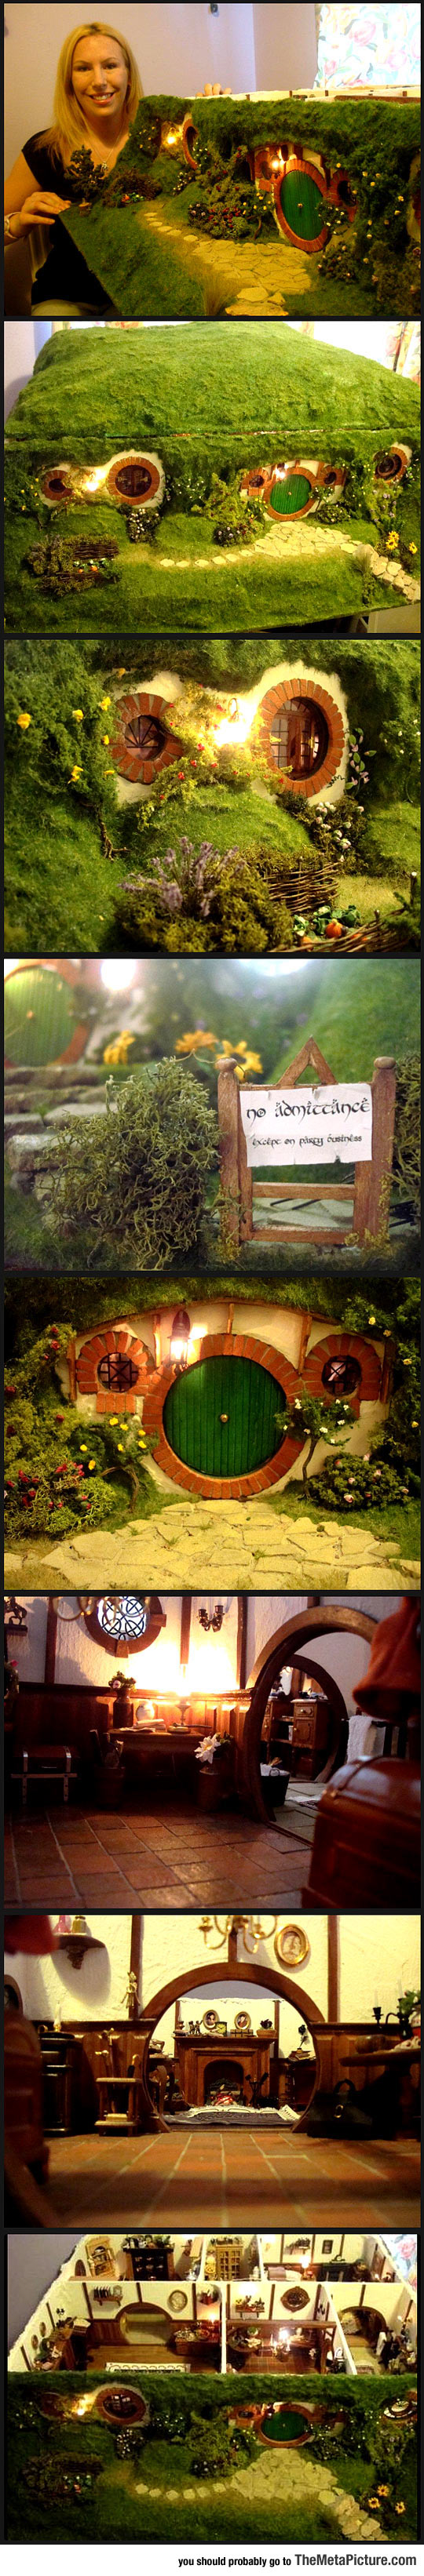 cute-doll-house-Hobbits-Lord-Rings